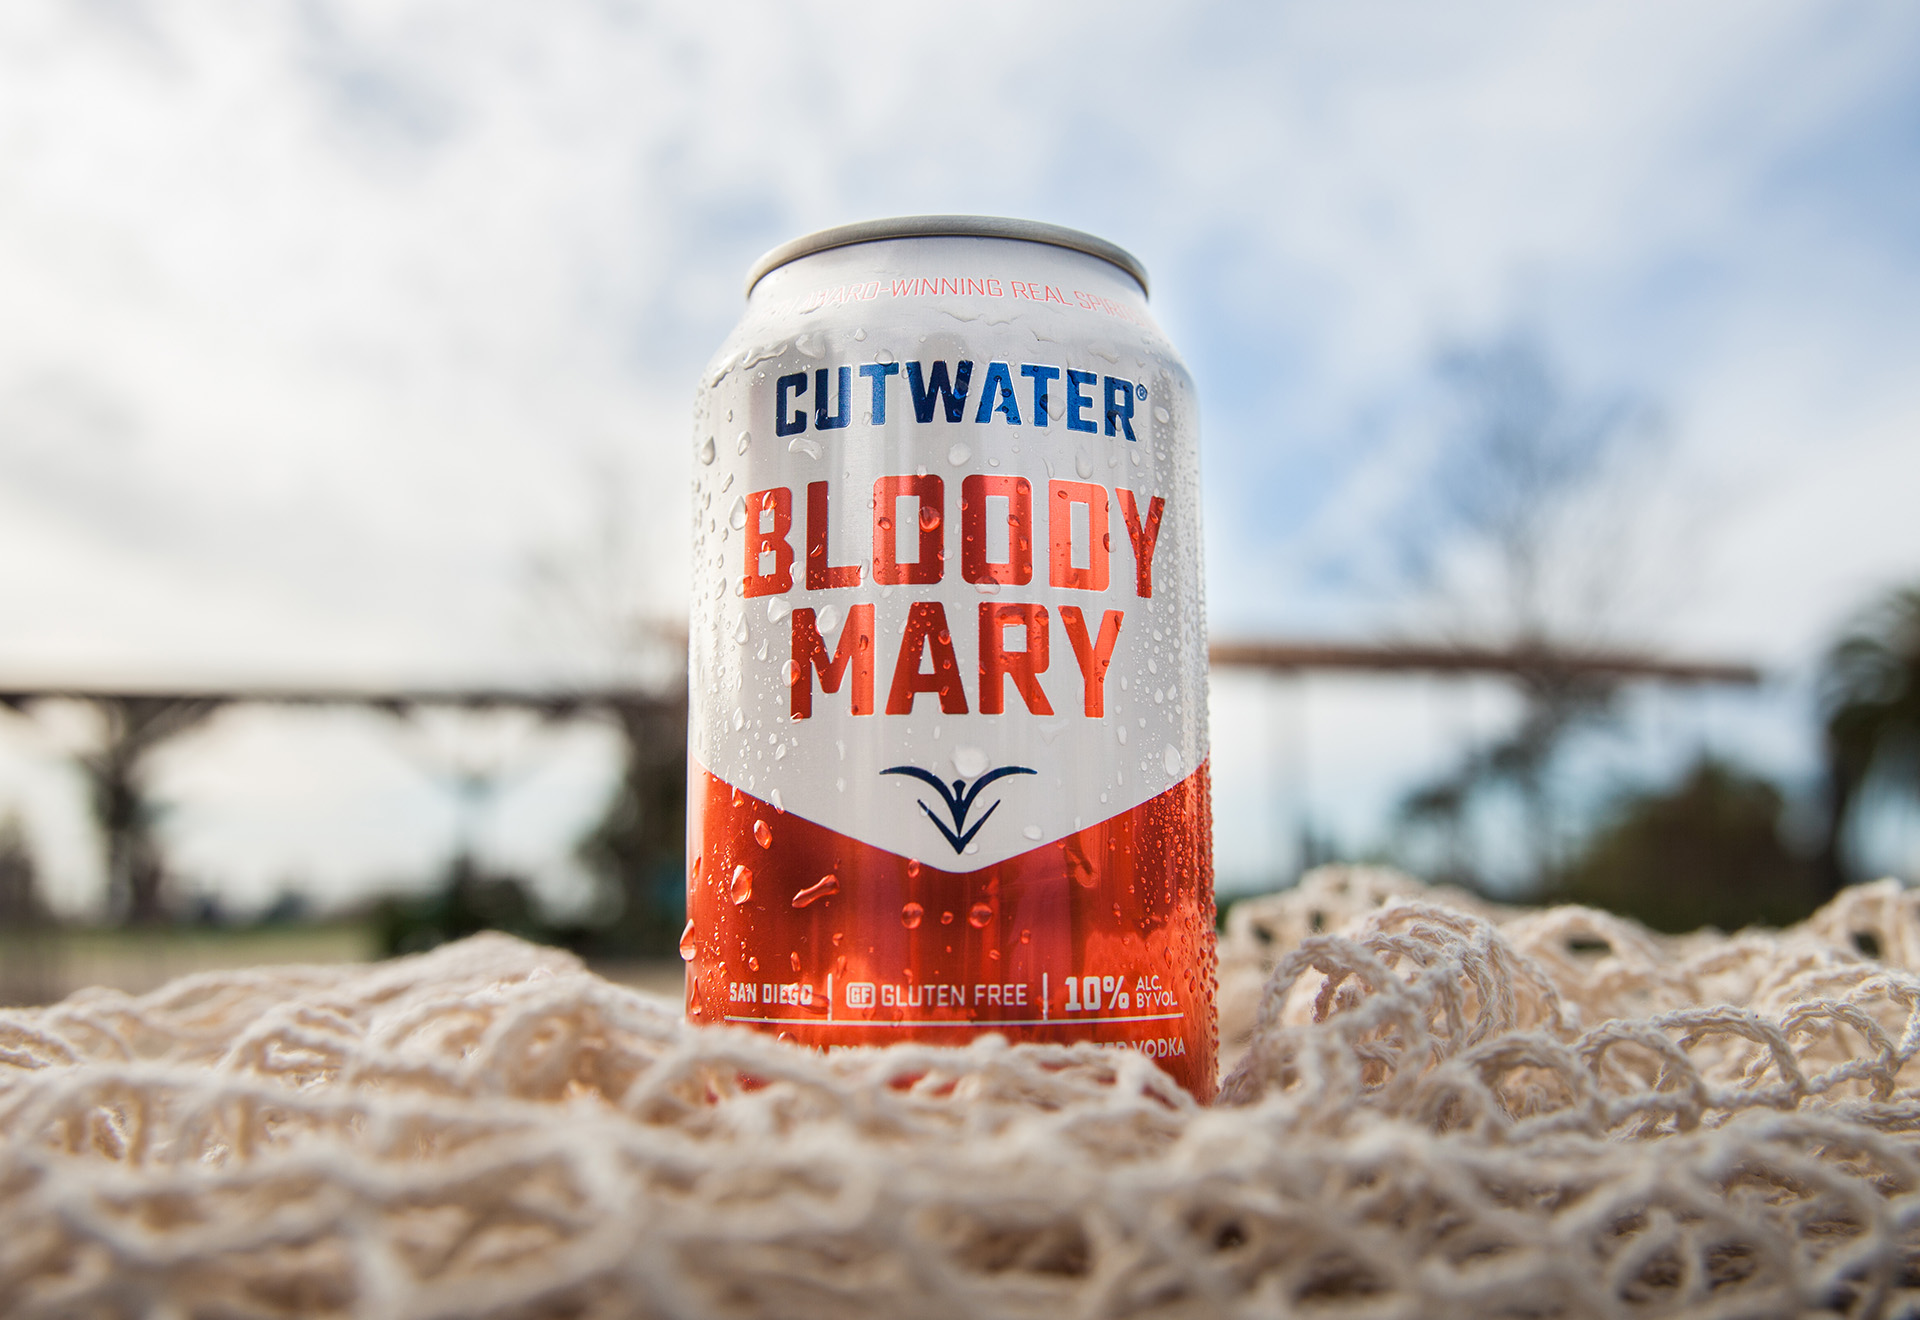 Cutwater Bloody Mary